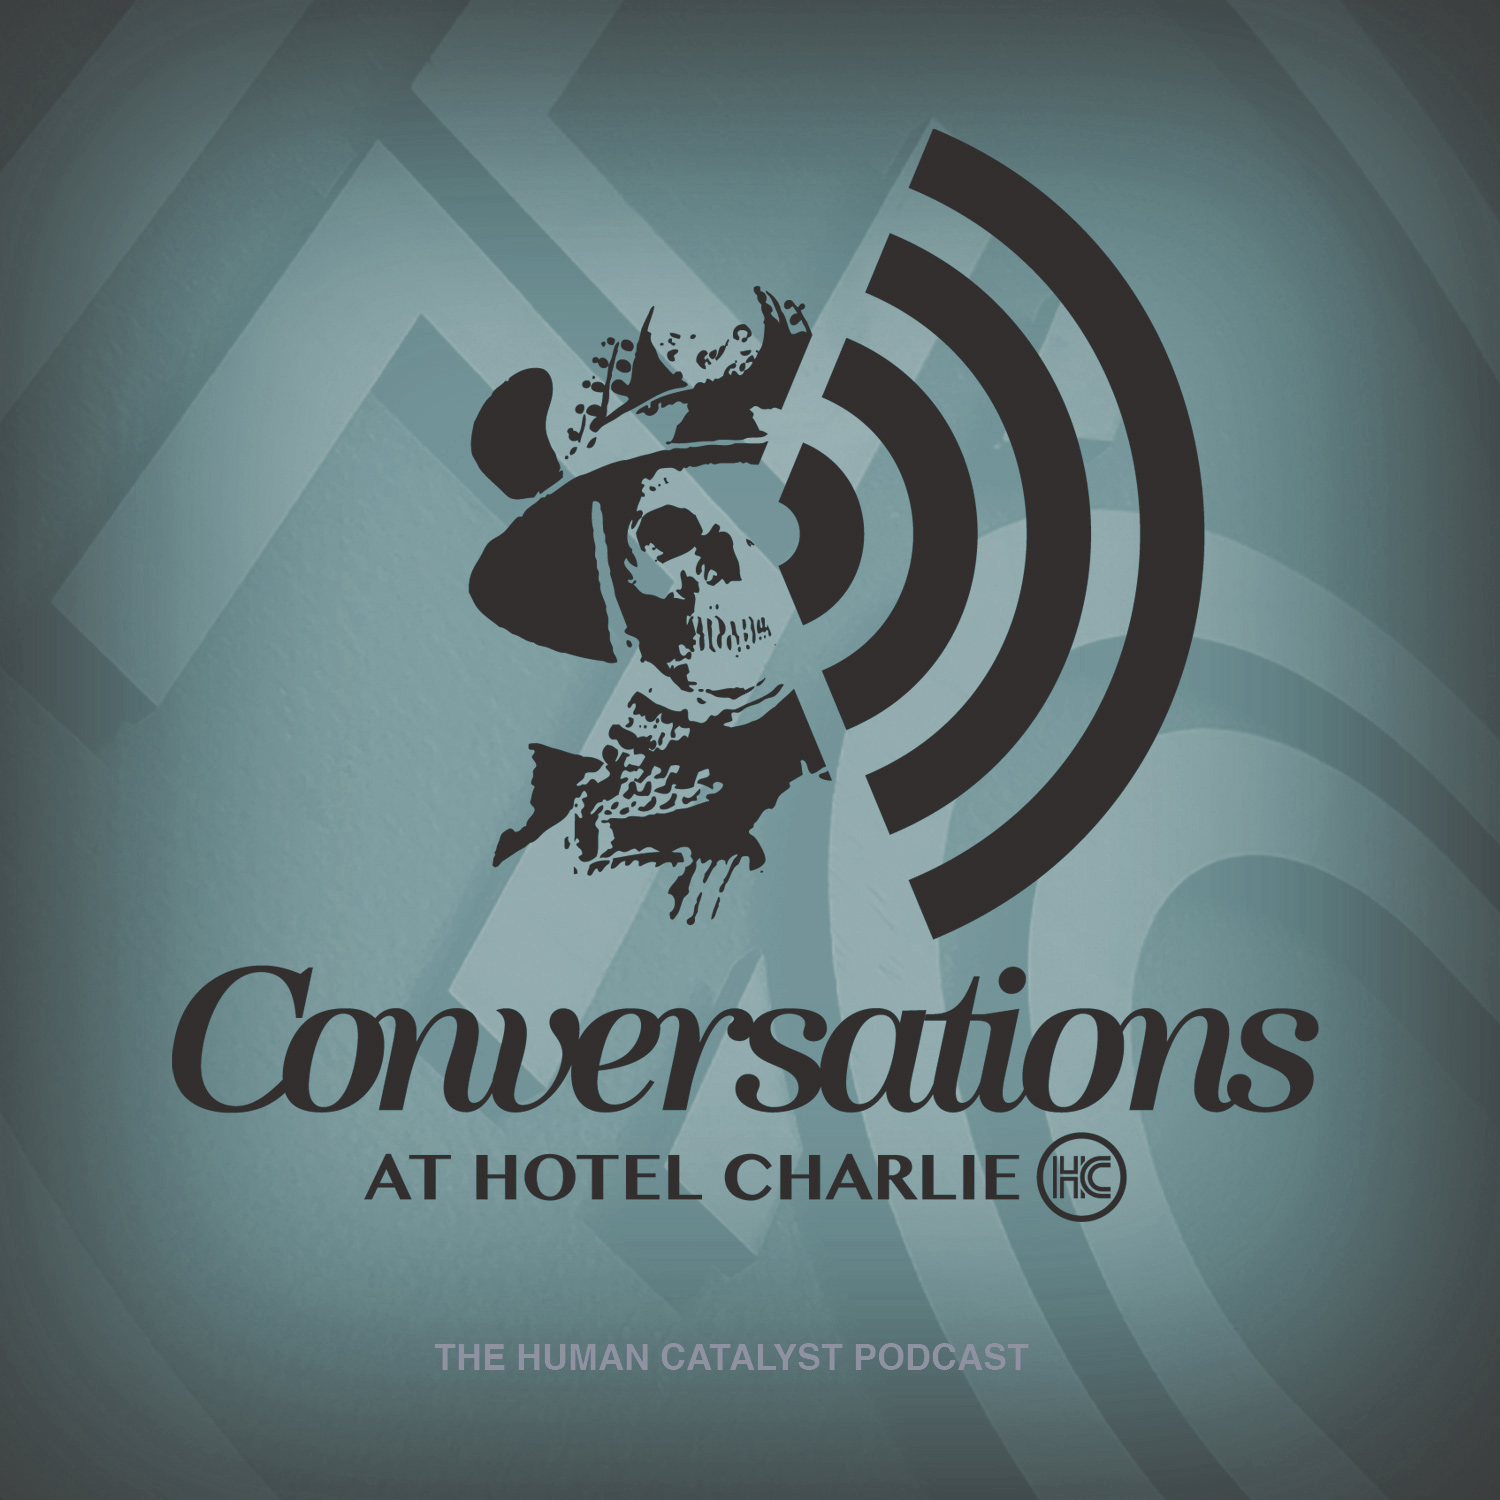 Conversations at Hotel Charlie